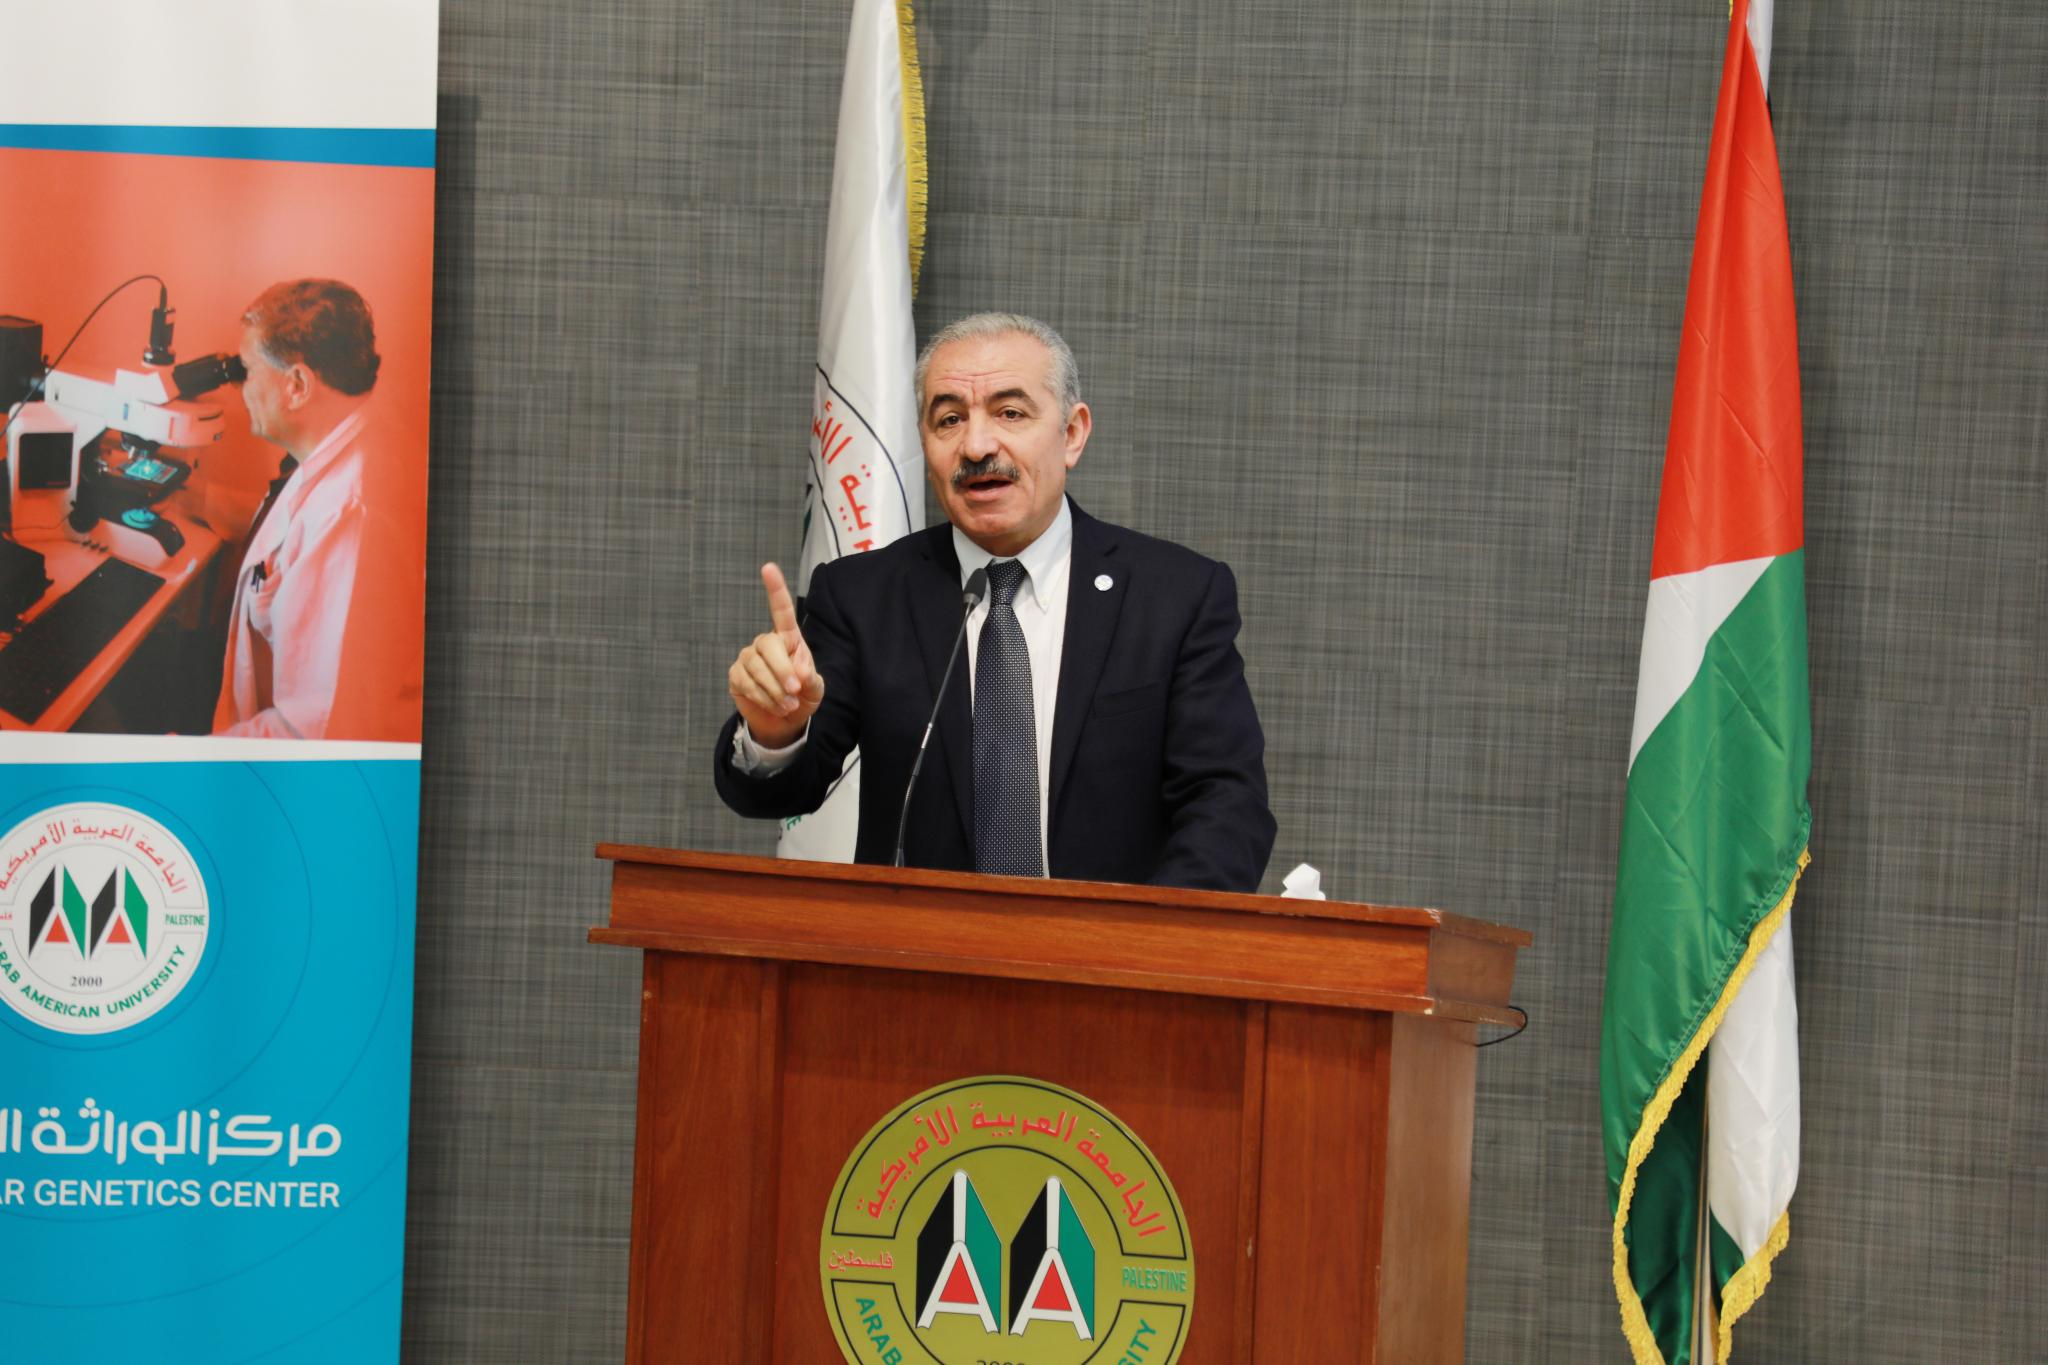 Speech of Dr. Mohamed Ashtia